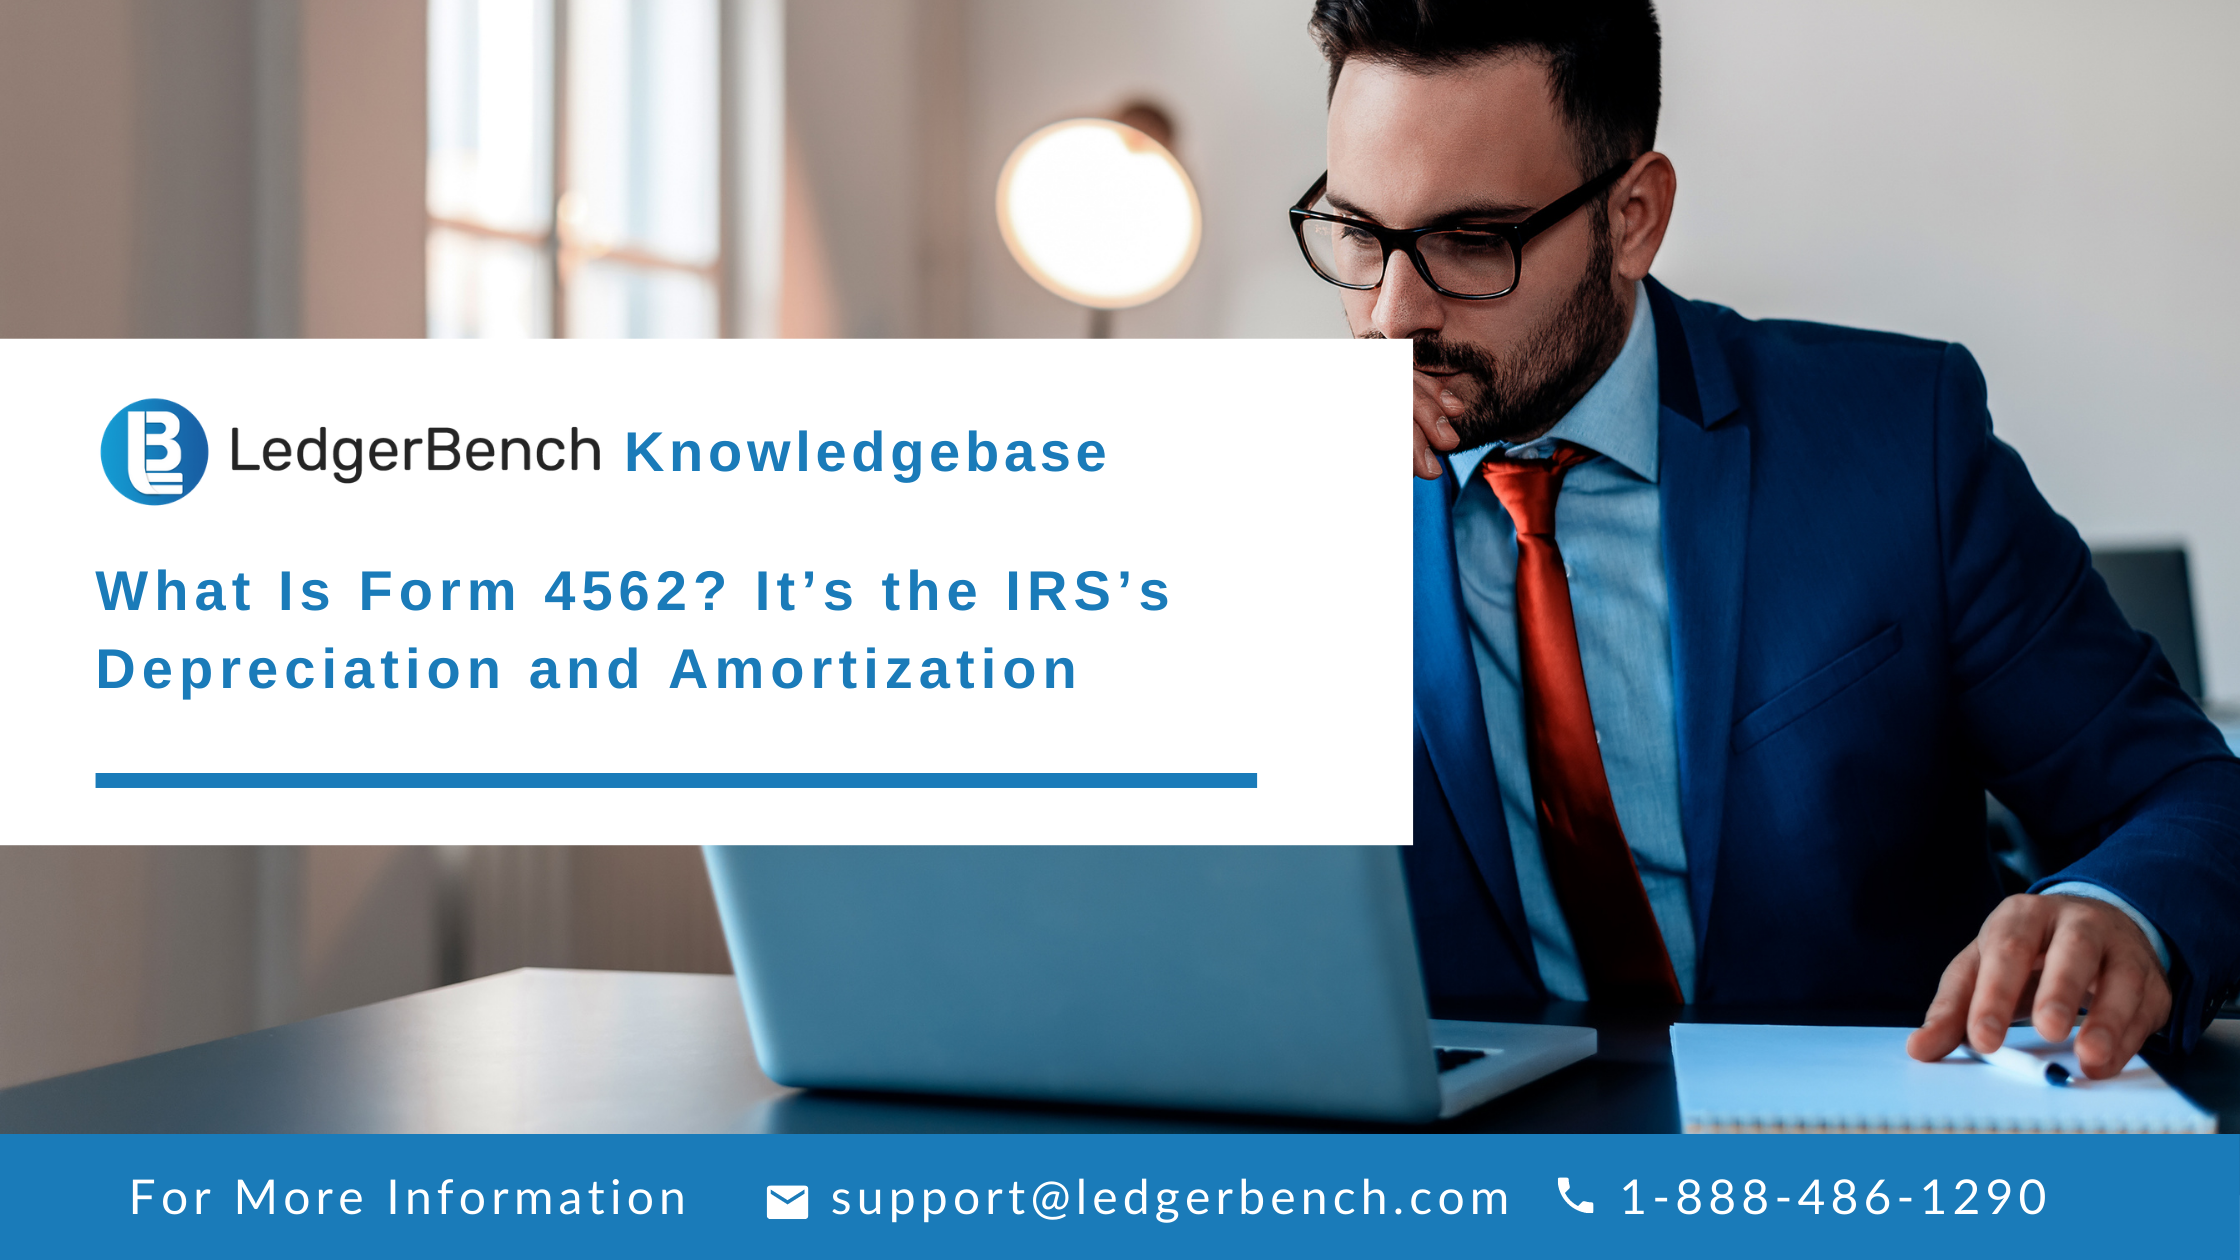 What Is Form 4562? It's the IRS's Depreciation and Amortization